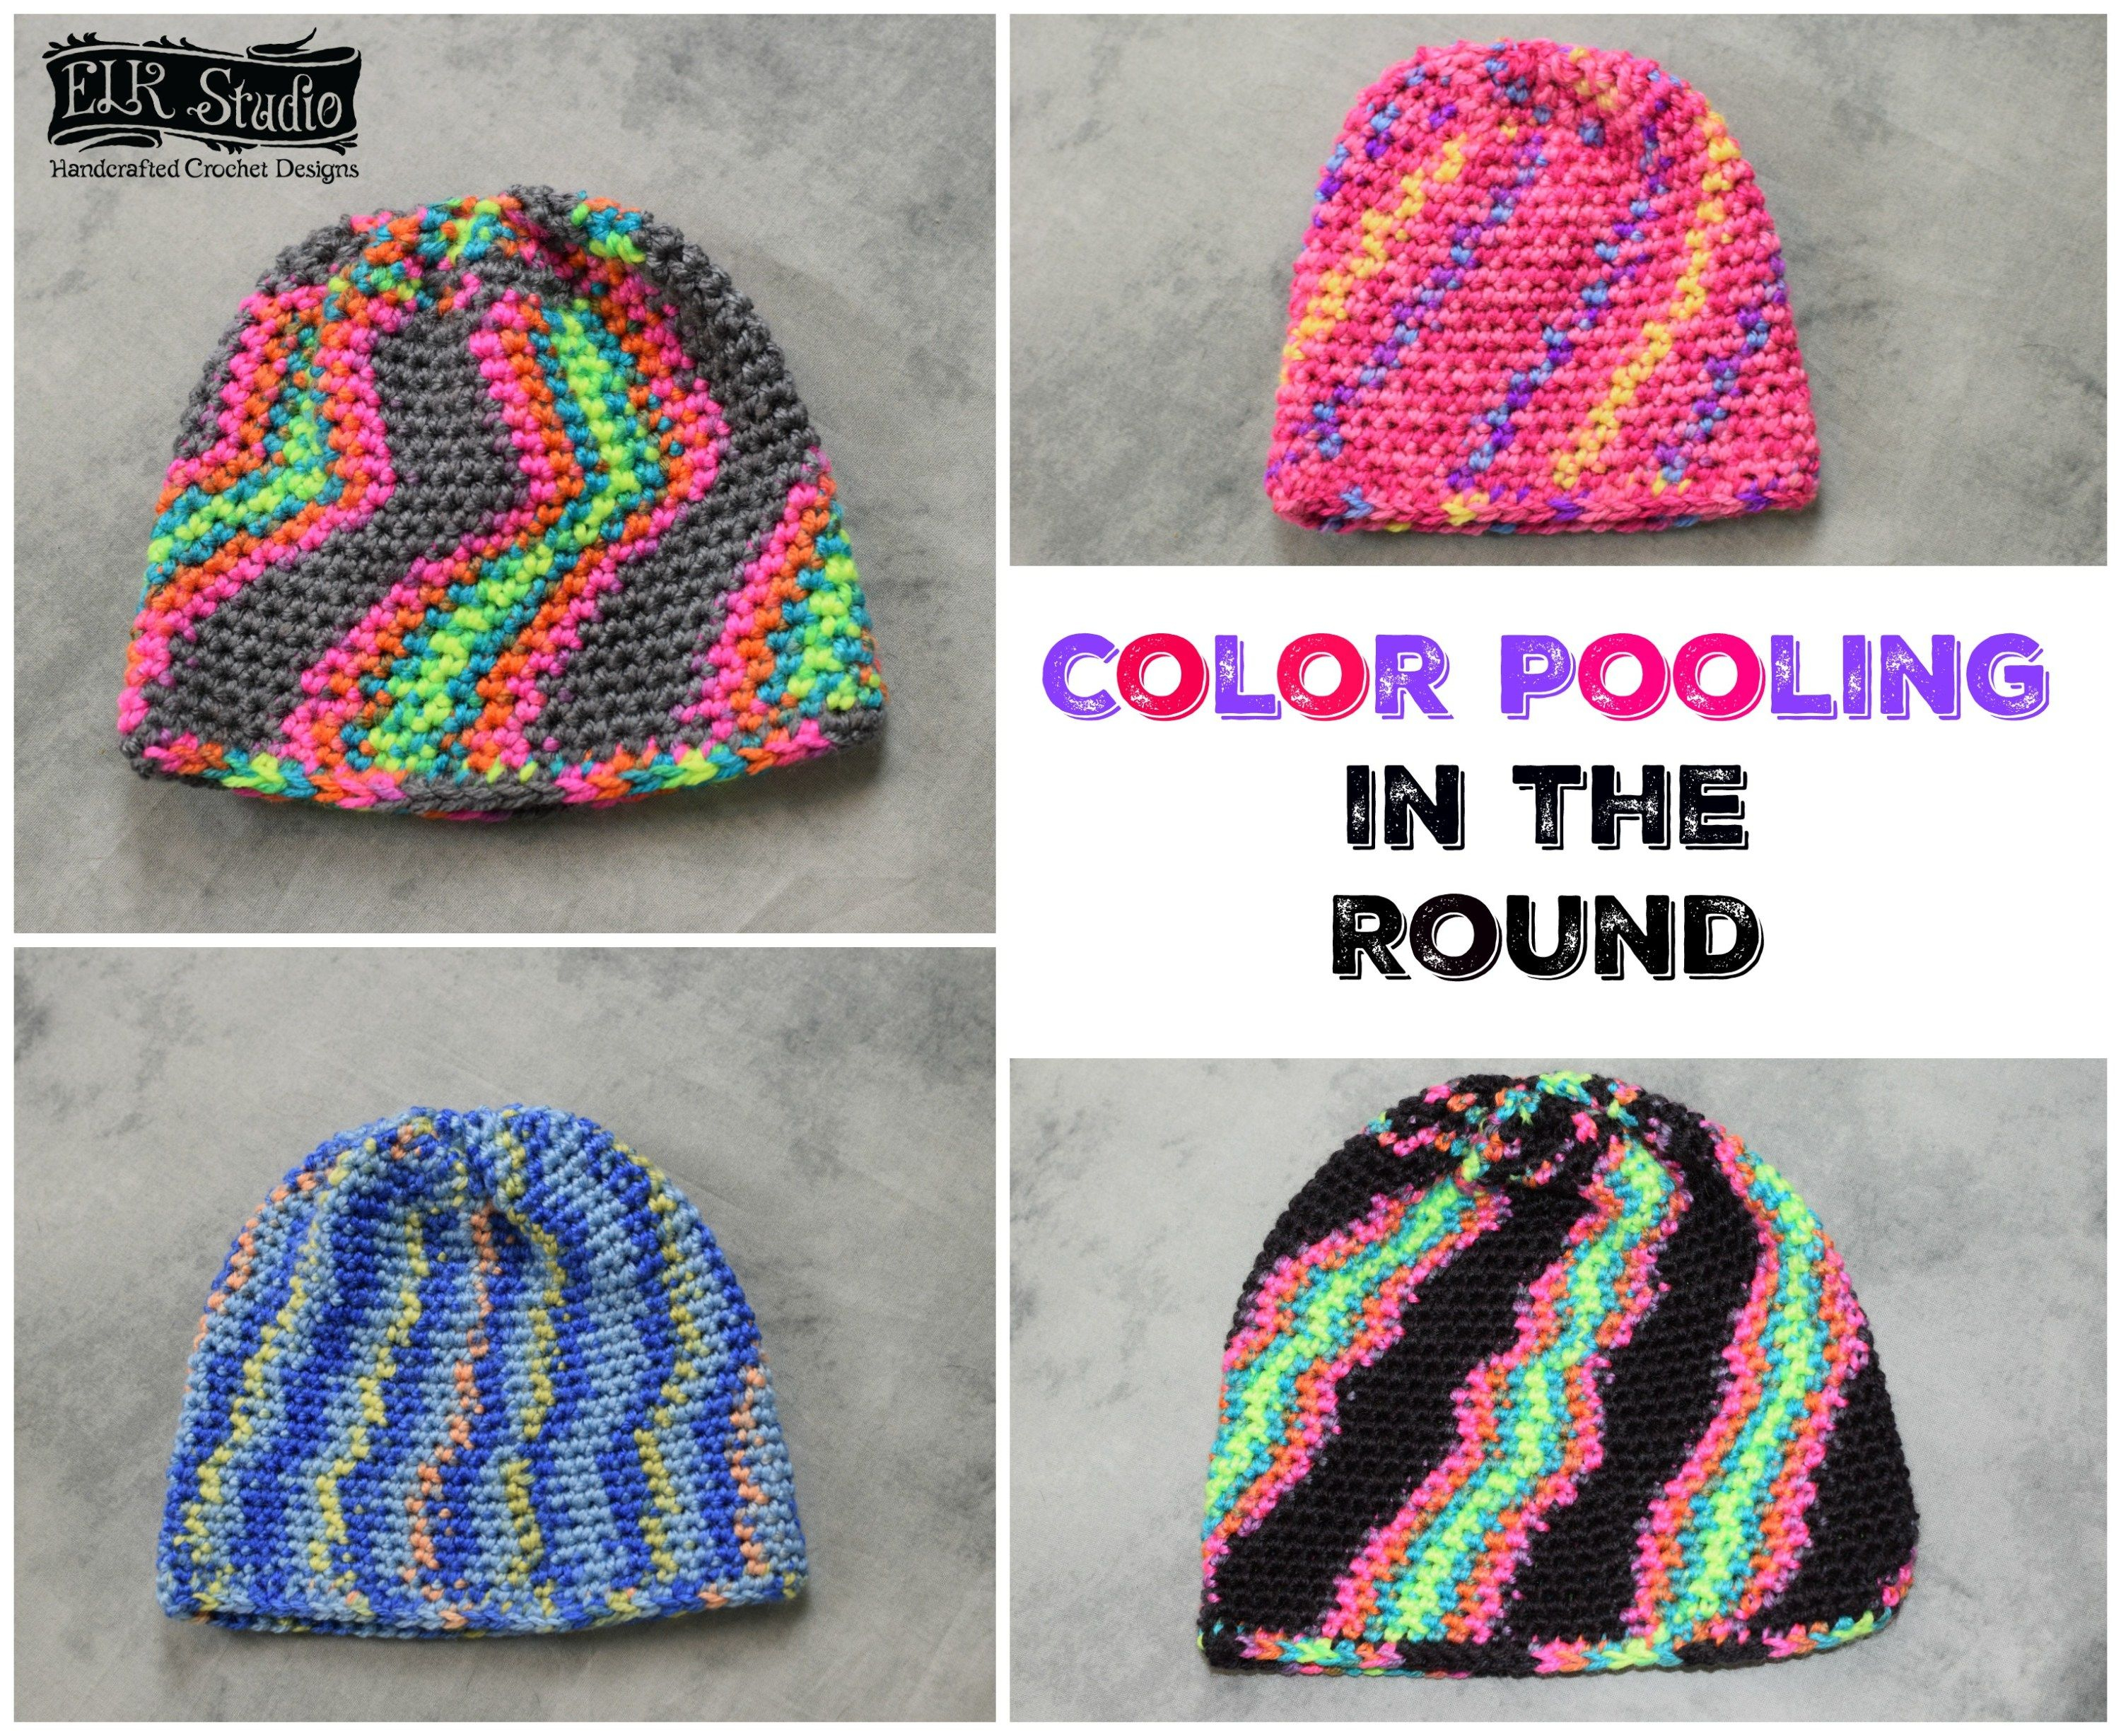 Crochet Pooling Free Pattern Color Pooling While Working In The Round Elk Studio Crochet